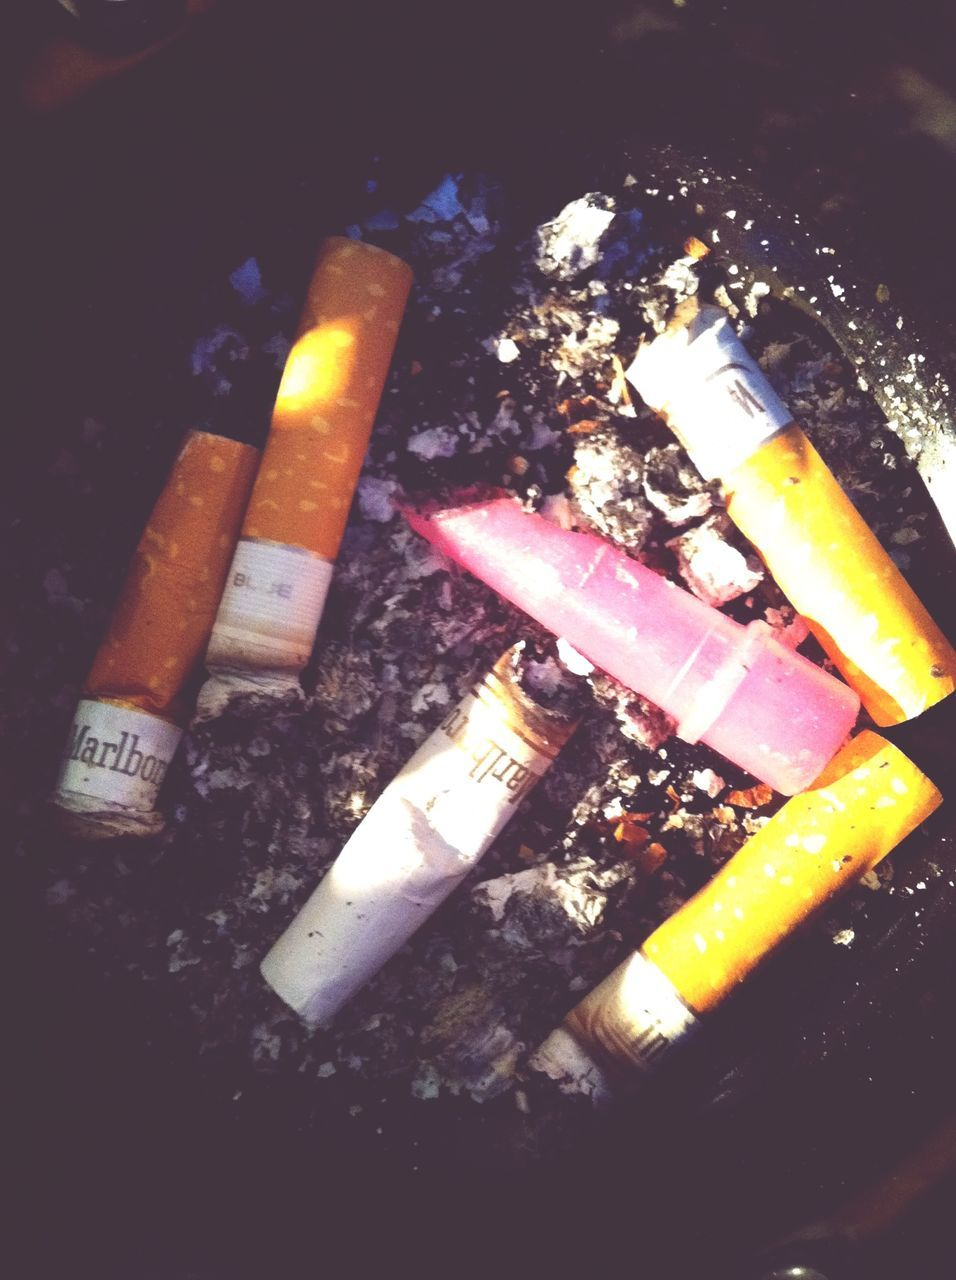 bad habit, smoking issues, addiction, cigarette, cigarette butt, ash, ashtray, danger, social issues, risk, indoors, no people, burning, close-up, night